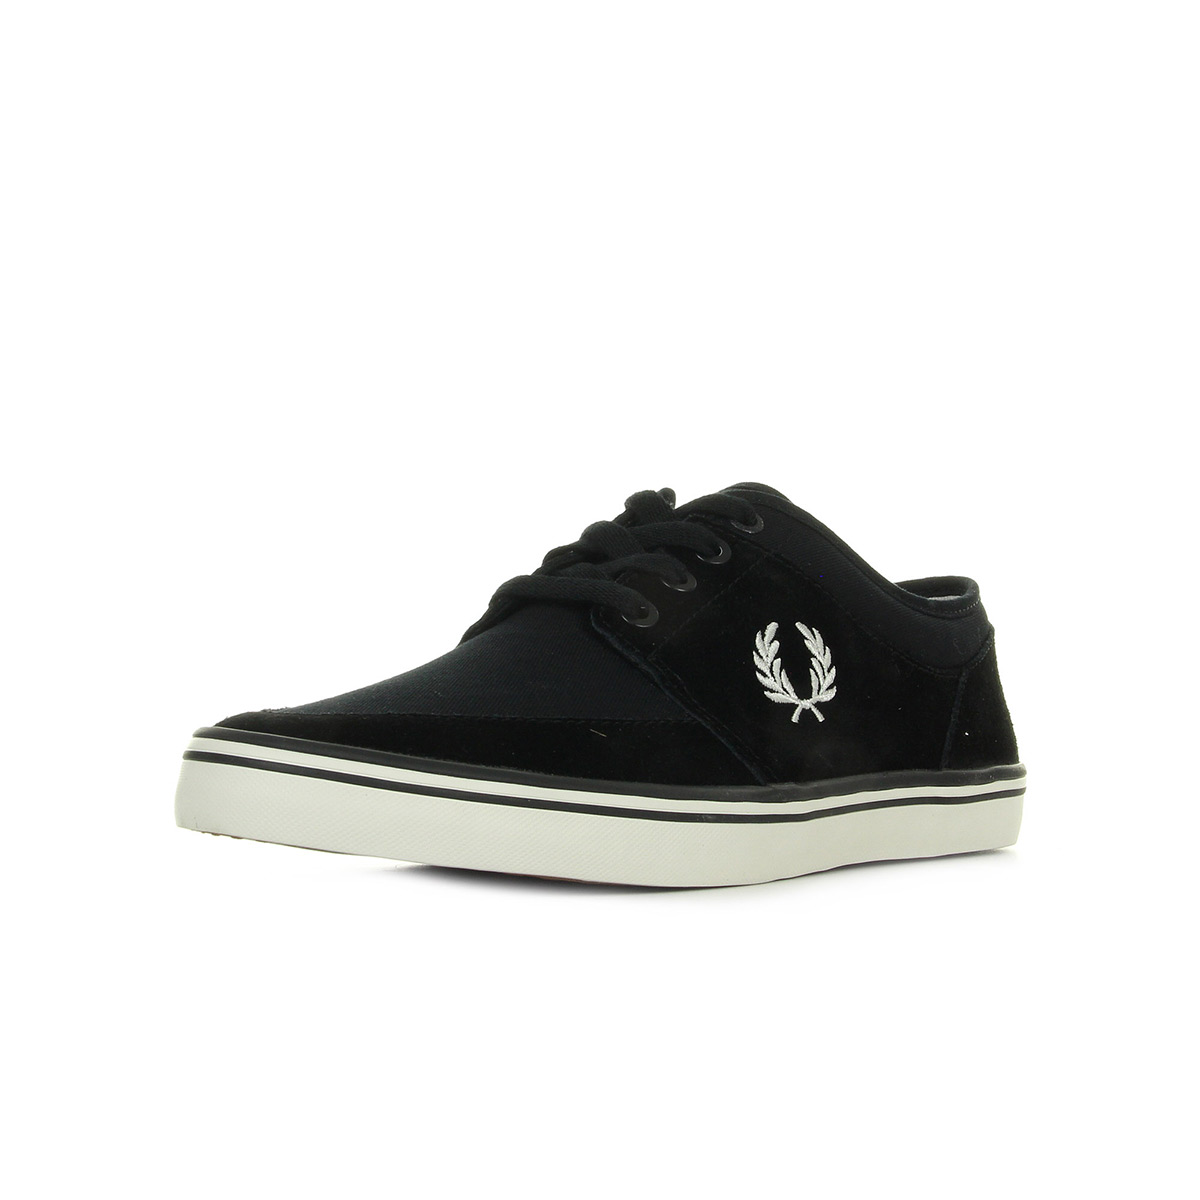 Baskets Fred Perry Stratford Suede Twill Black Porcelain 7VOLzThngh